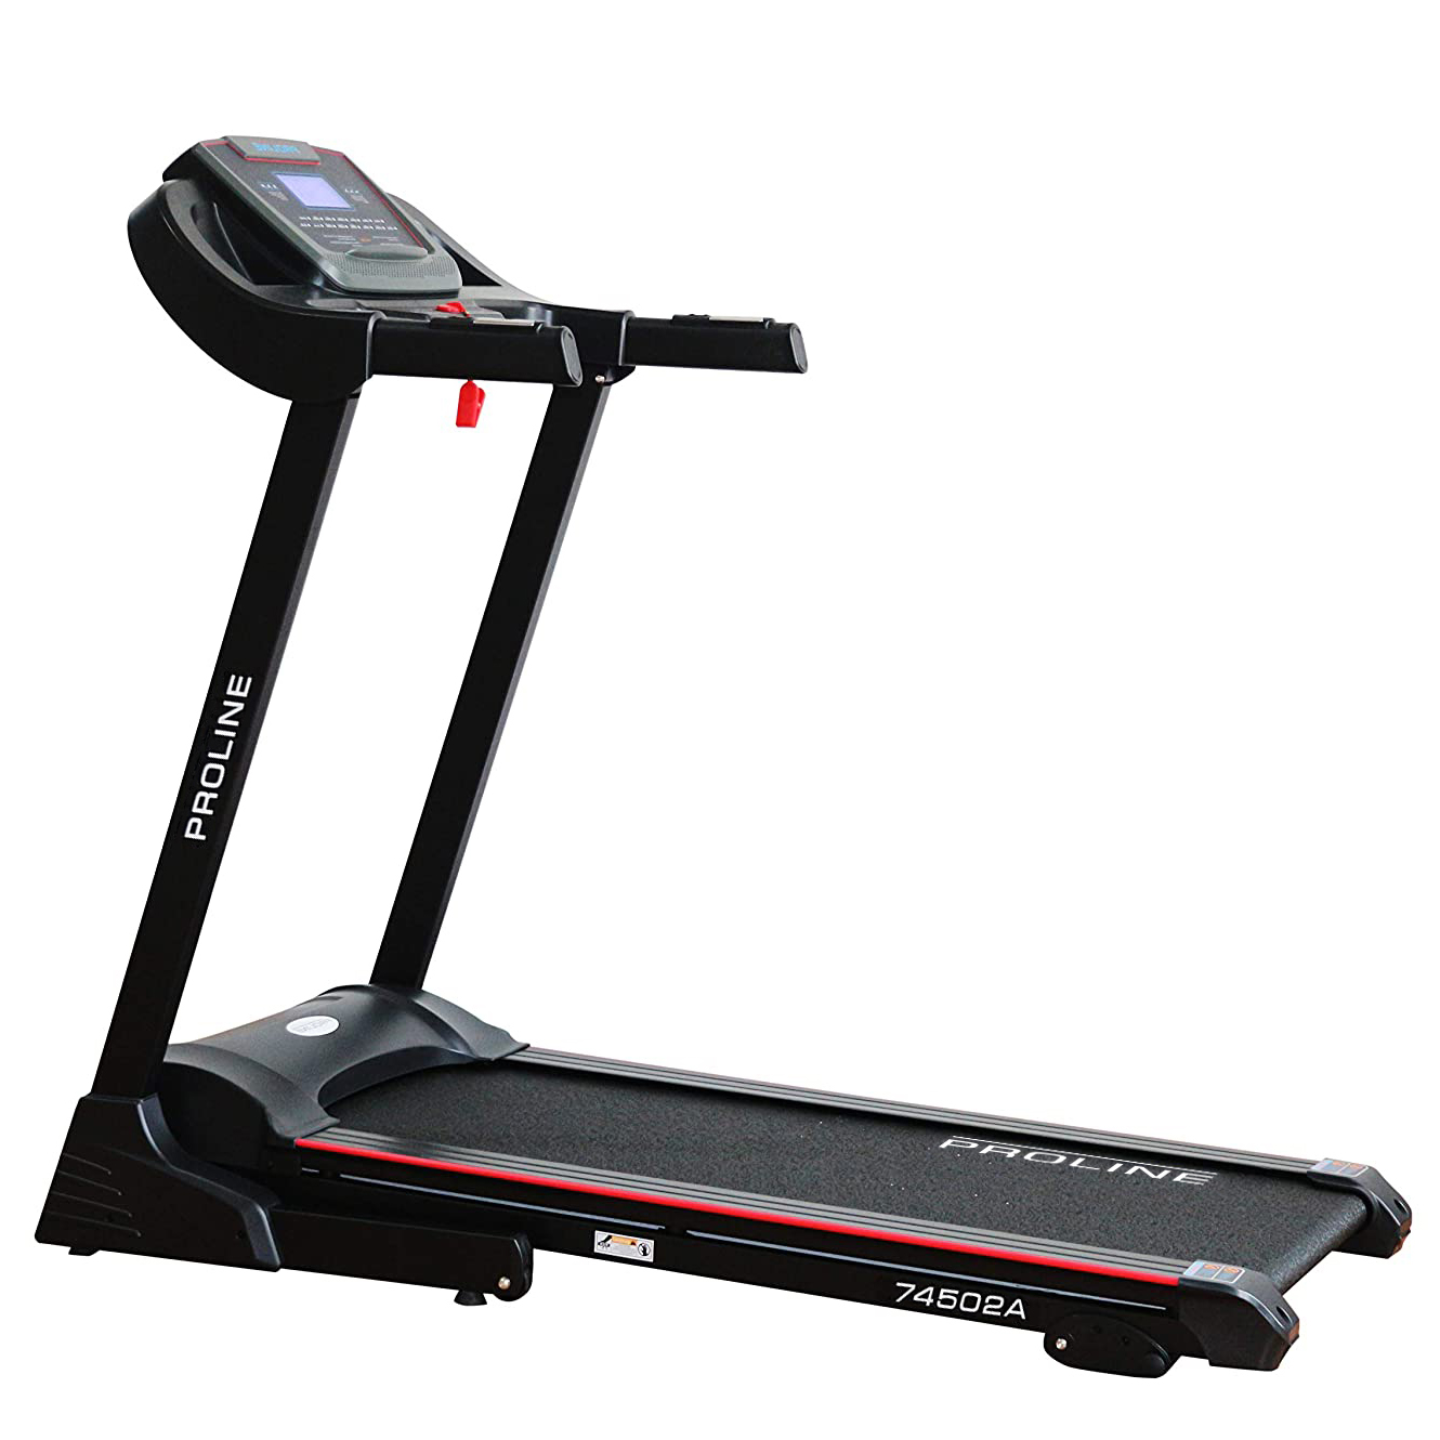 PROLINE 74502A TREADMILL